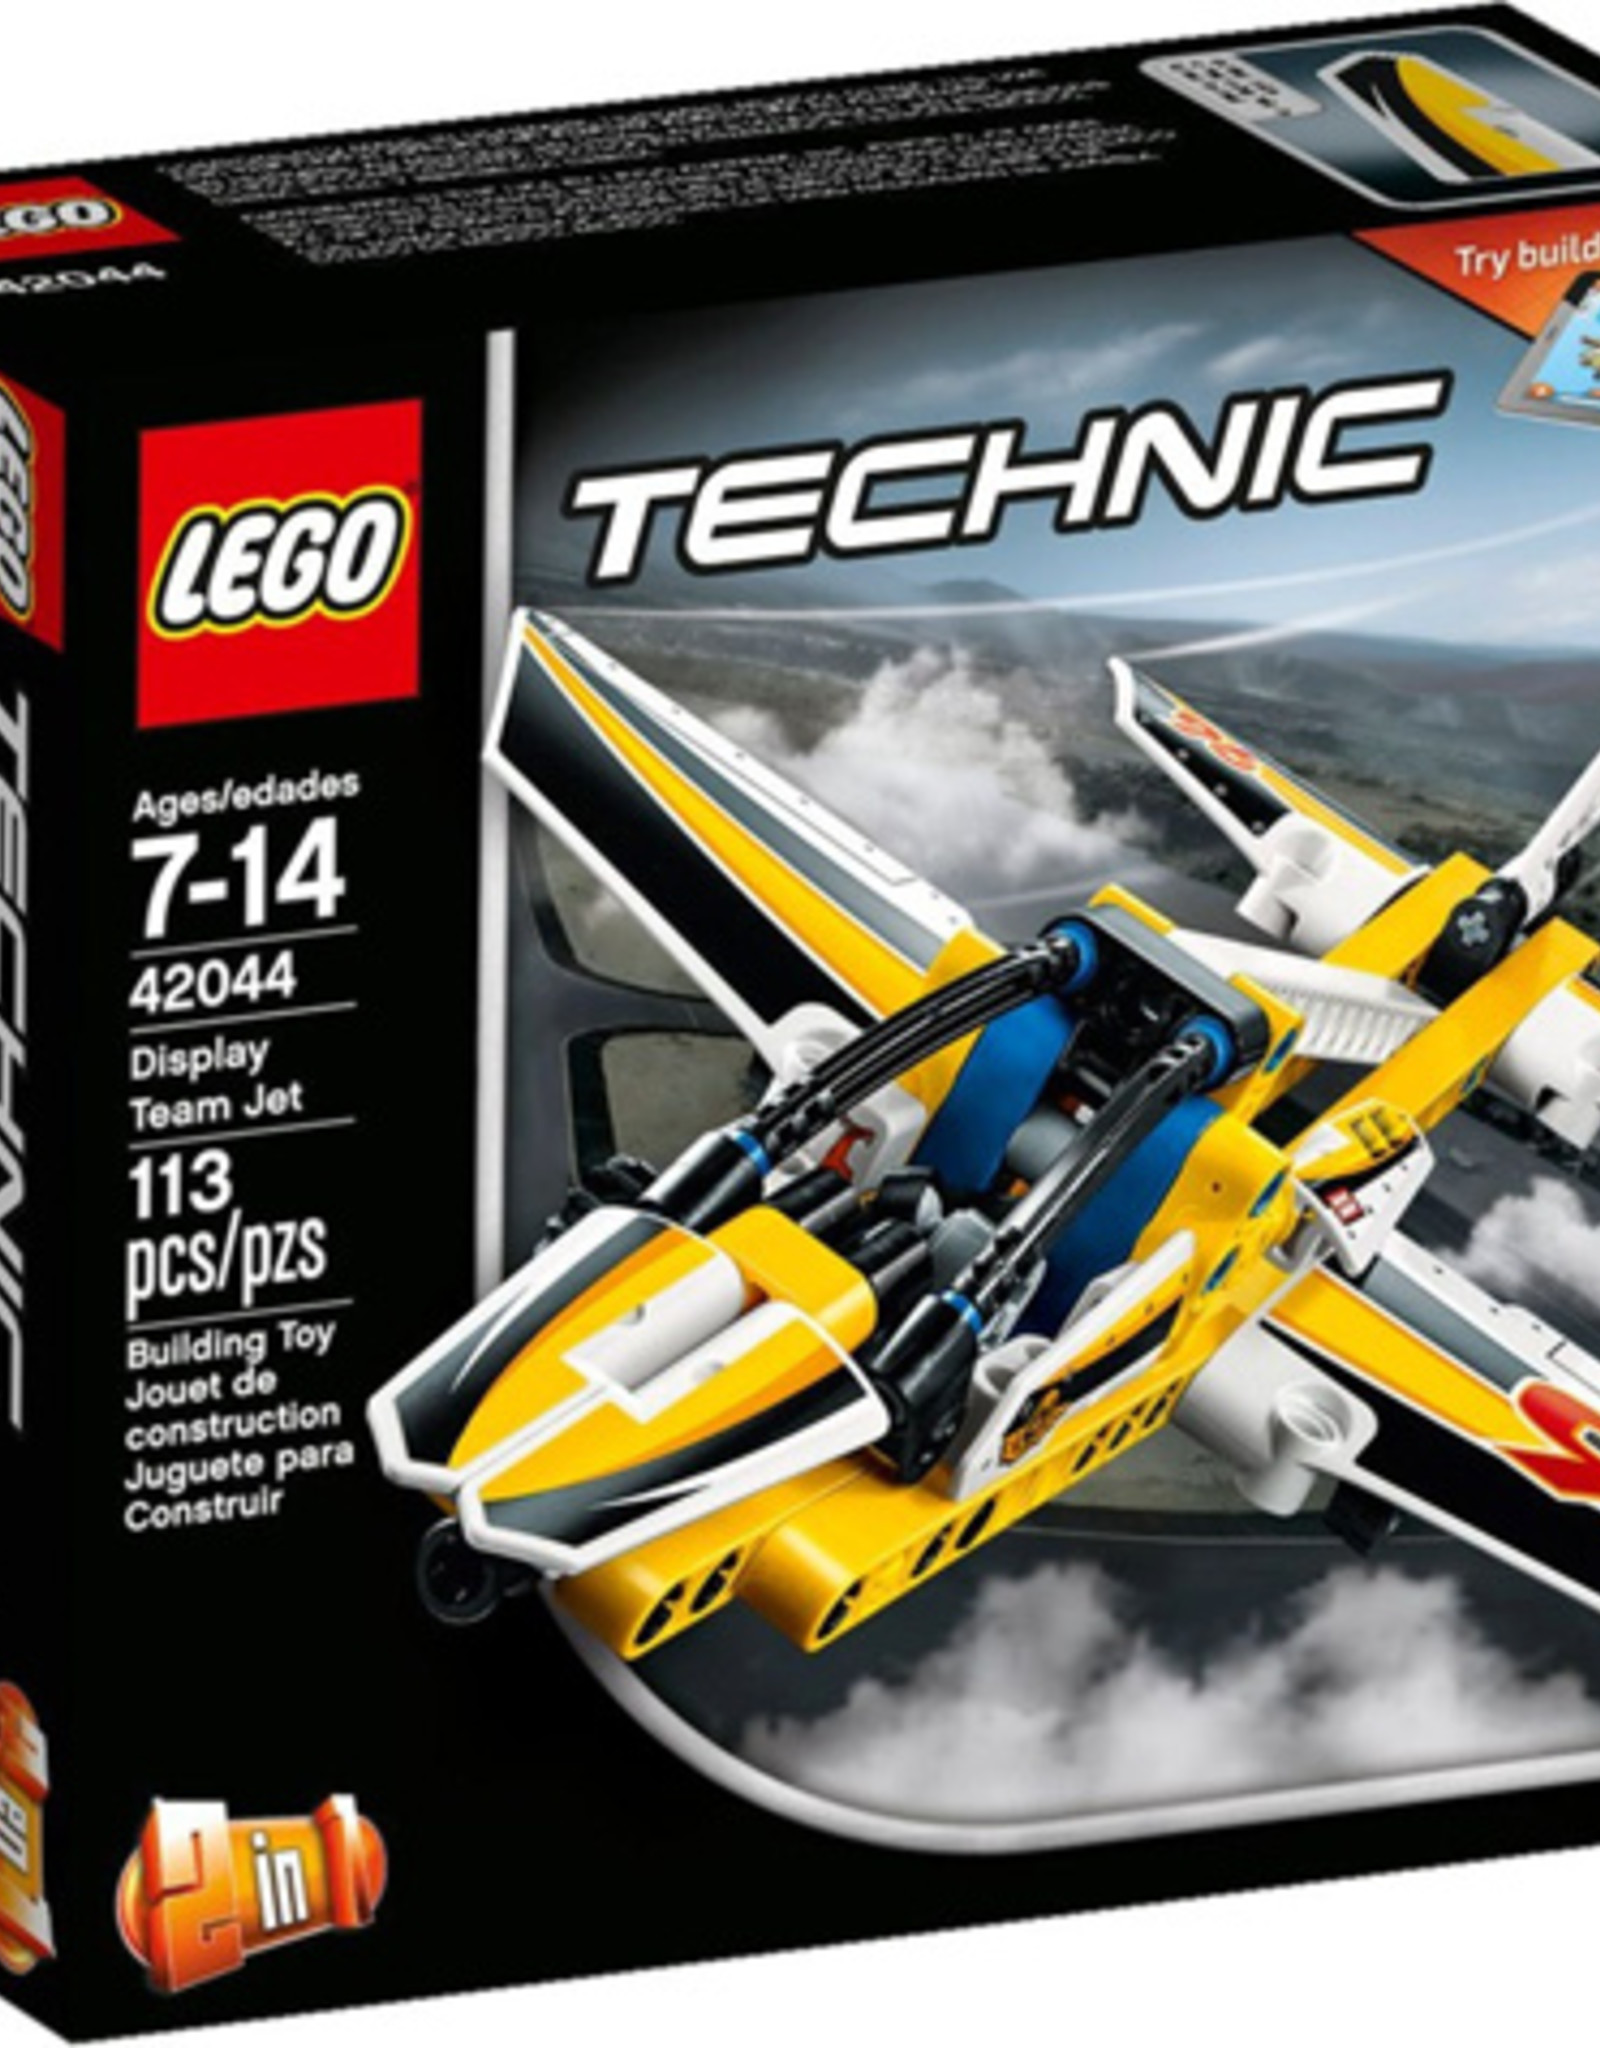 LEGO LEGO 42044 Display Team Jet TECHNIC